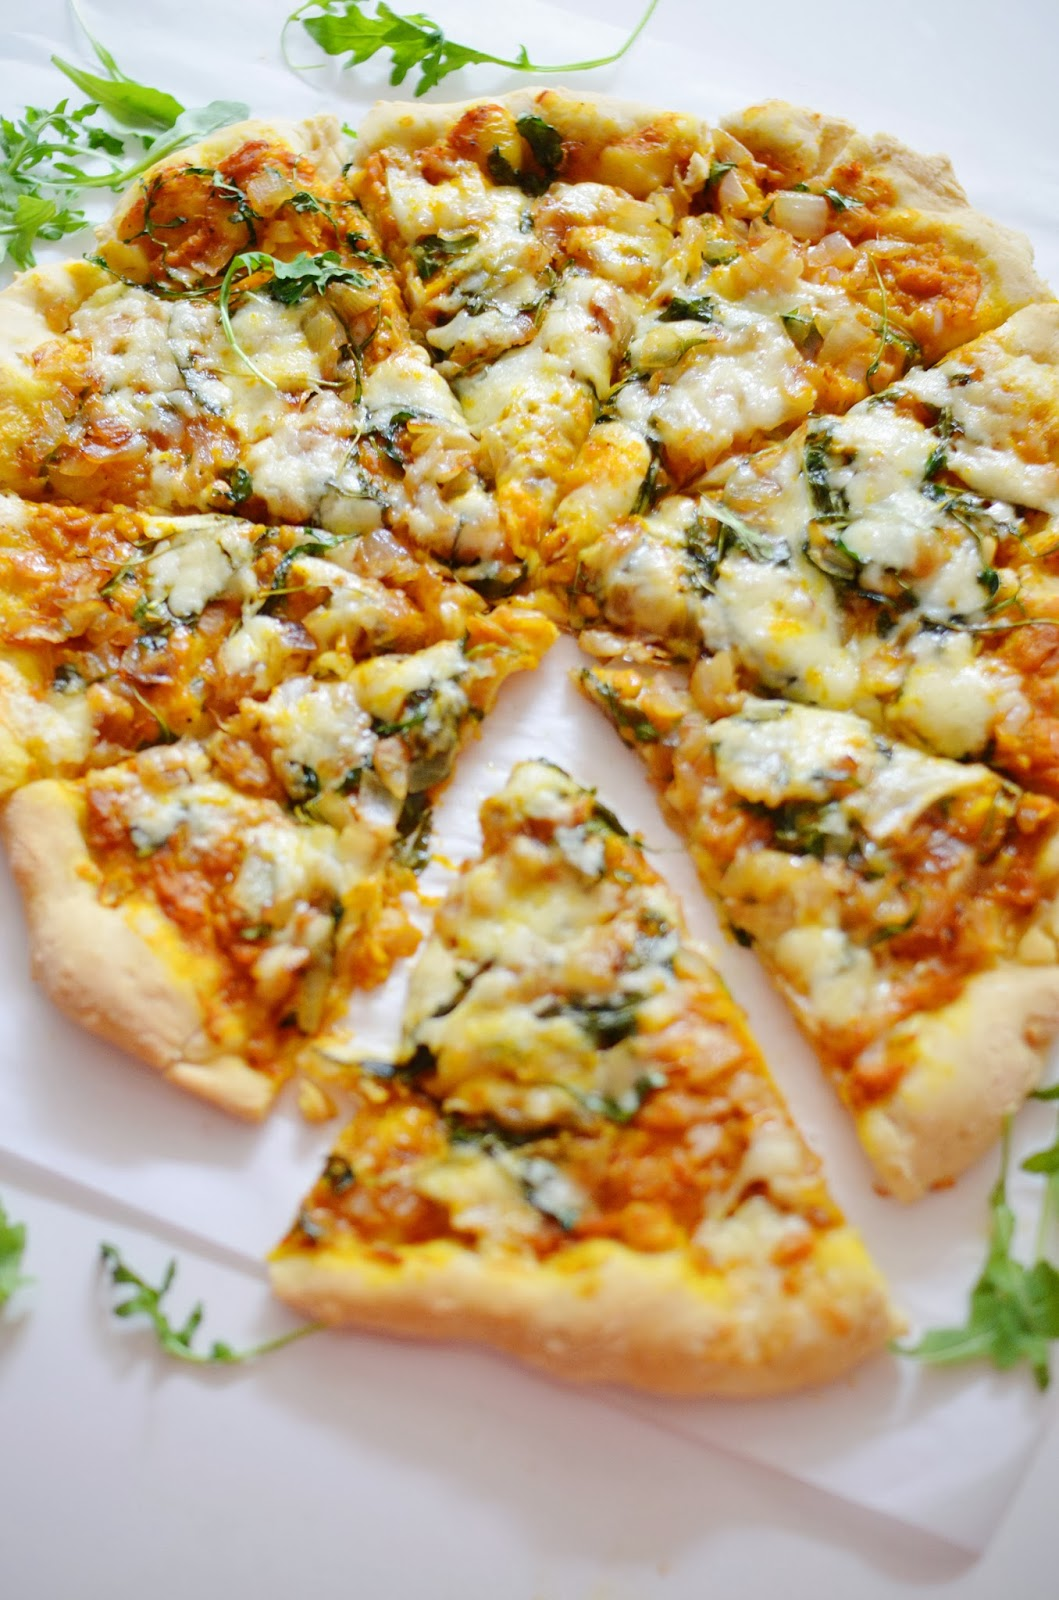 Savory pumpkin pizza. 9 Salty & Savory Pumpkin Recipes that aren't Desserts: Fall is here and pumpkin is everywhere! I love it! I always forget that you can cook dishes with pumpkin that aren't desserts or overly sweet. Making pumpkin the star of the dinner is so fast and easy. I like the tip to use pumpkin puree and mix it into an Alfredo sauce then making a delicious pizza. And OMG! Make mac and cheese with pumpkin it's the boom! Must try!